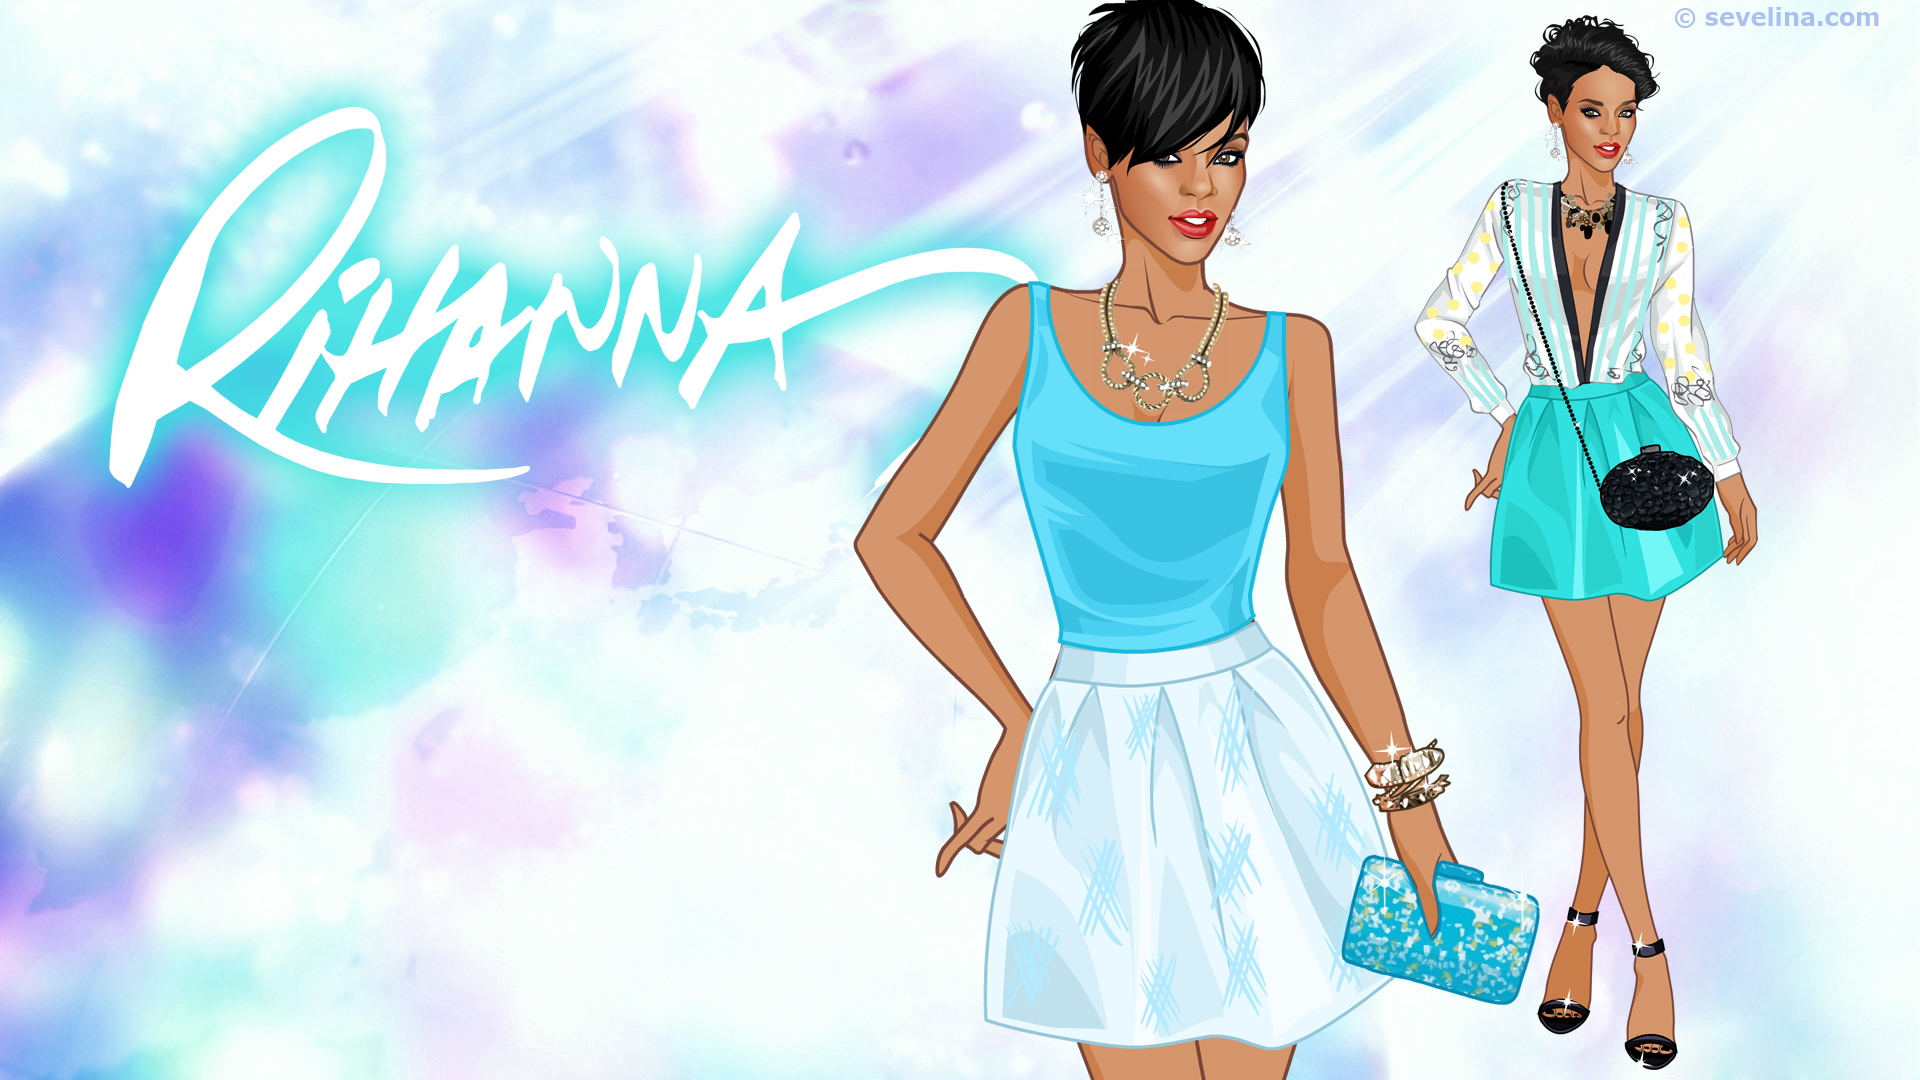 Rihanna Wallpapers Full Hd Sevelina Games For Girls